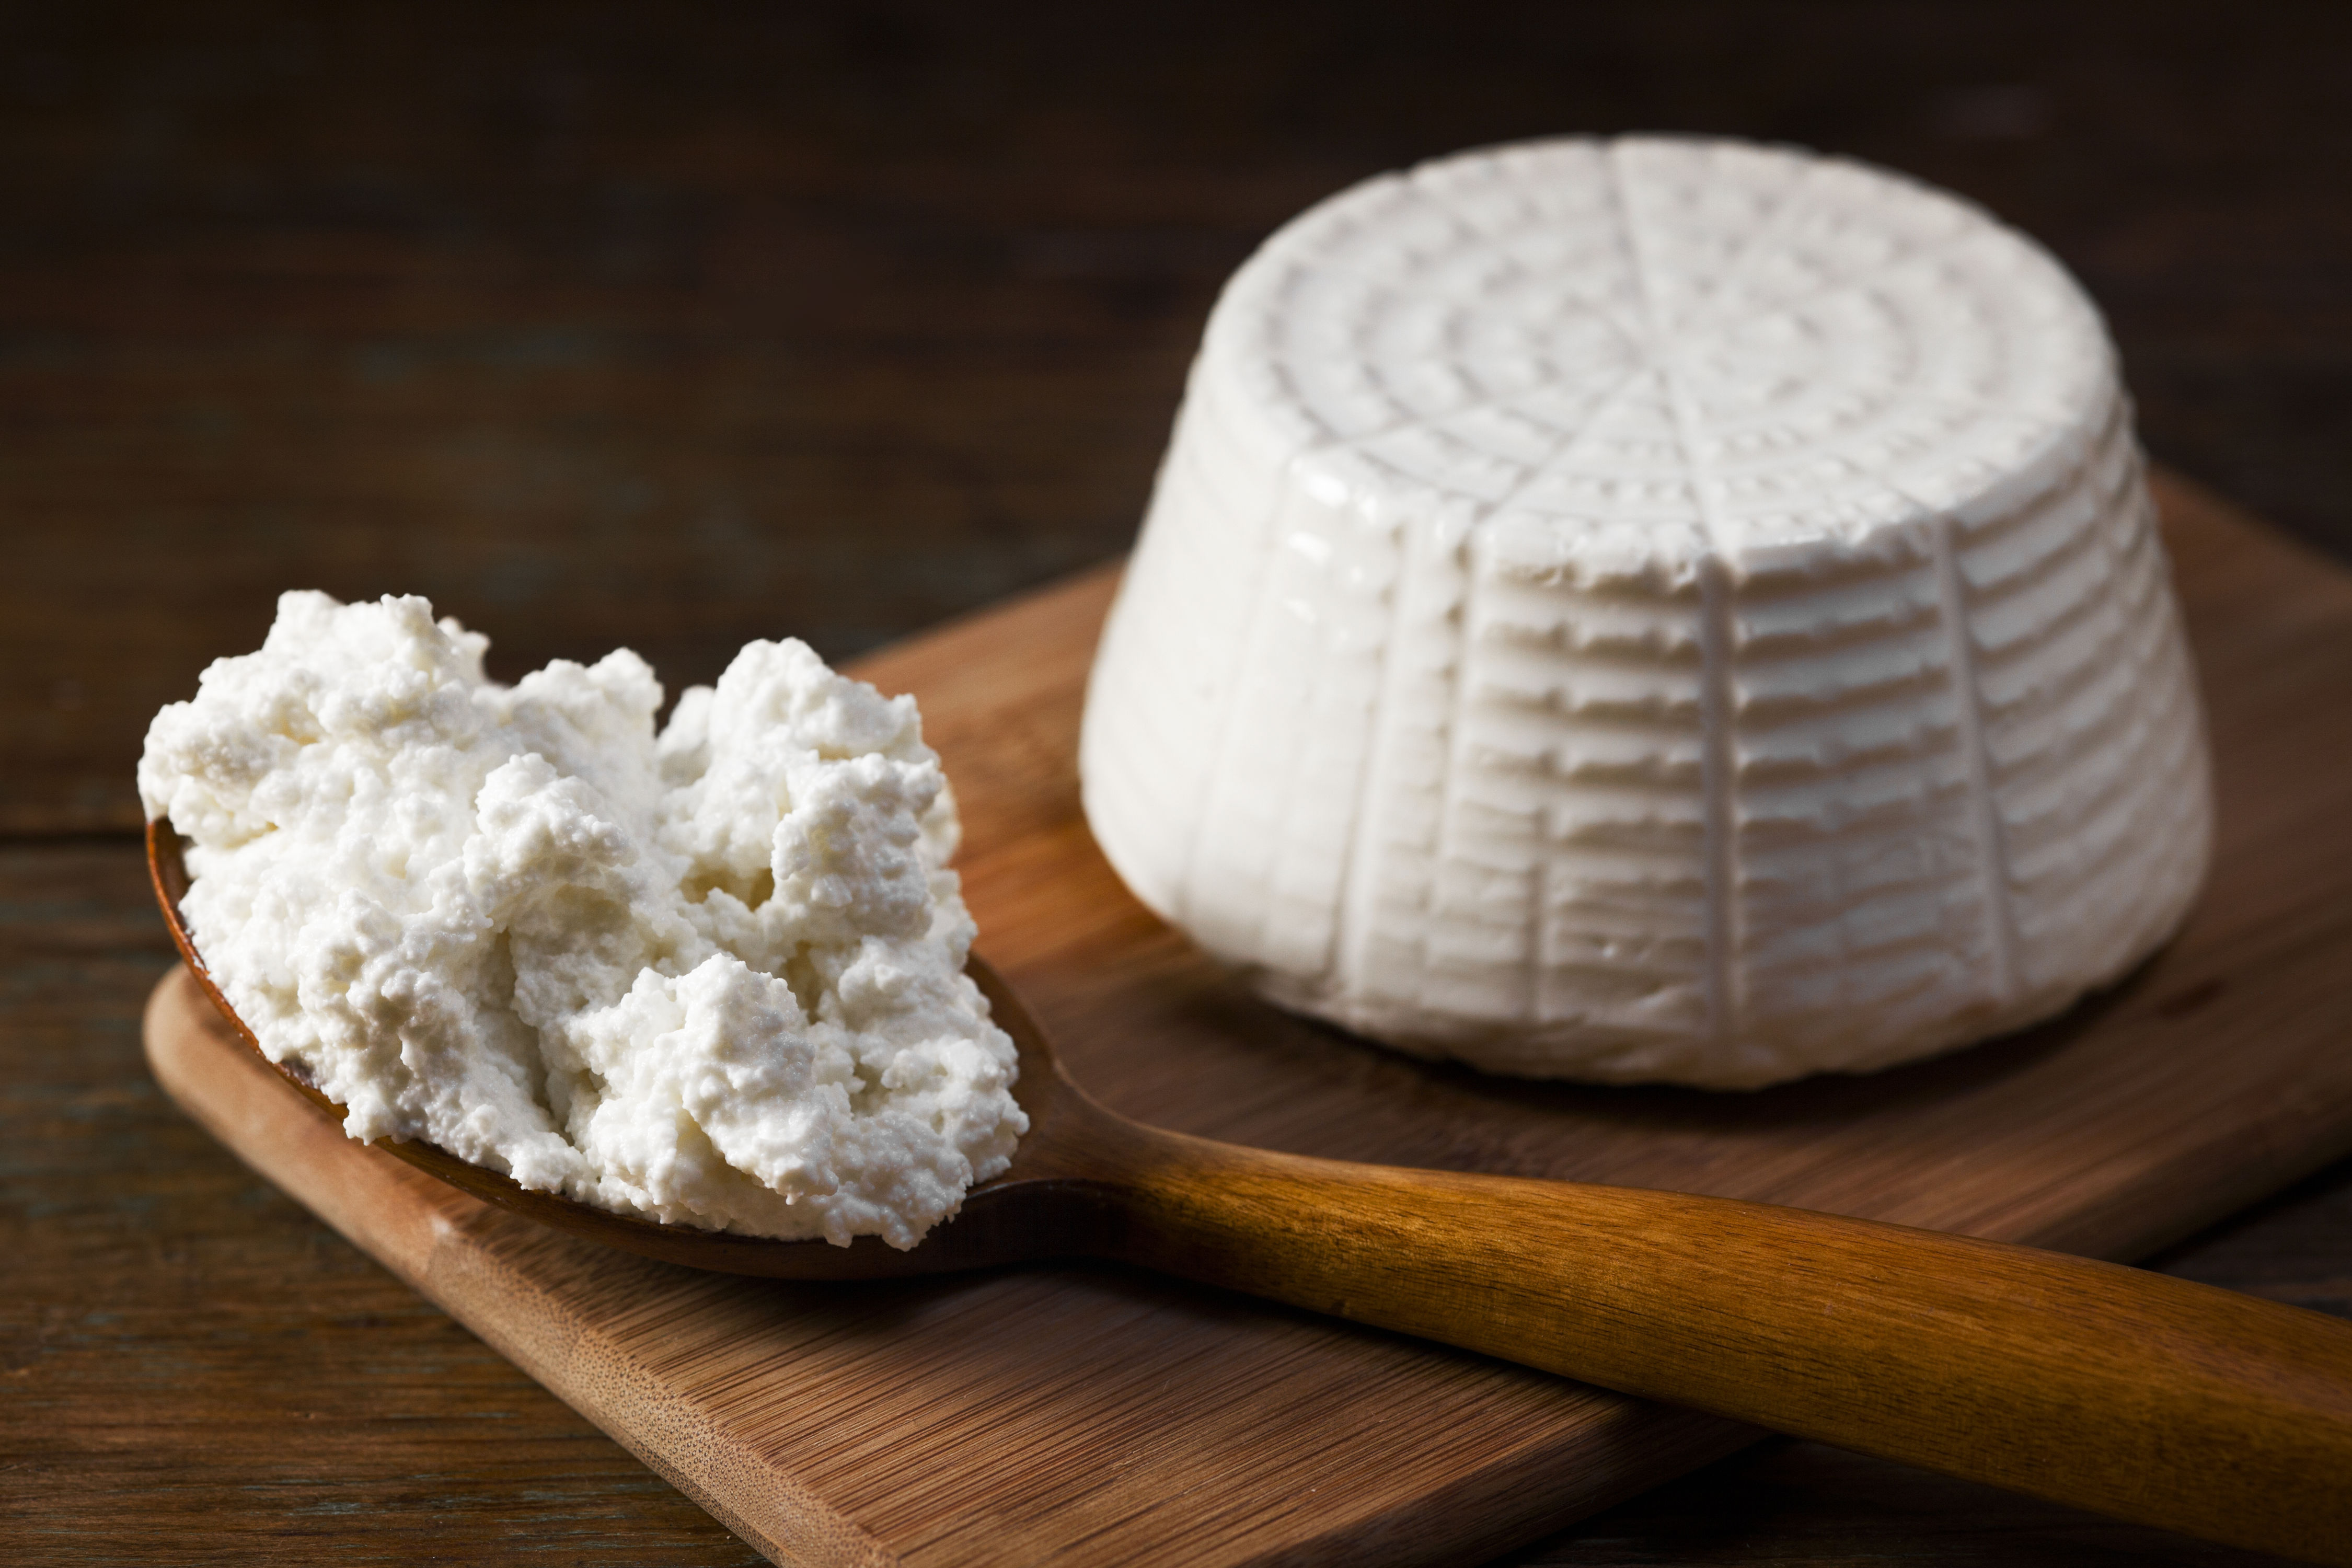 <i>The New York Times</i> Wants You to Add Ricotta to Your Biscuit Dough